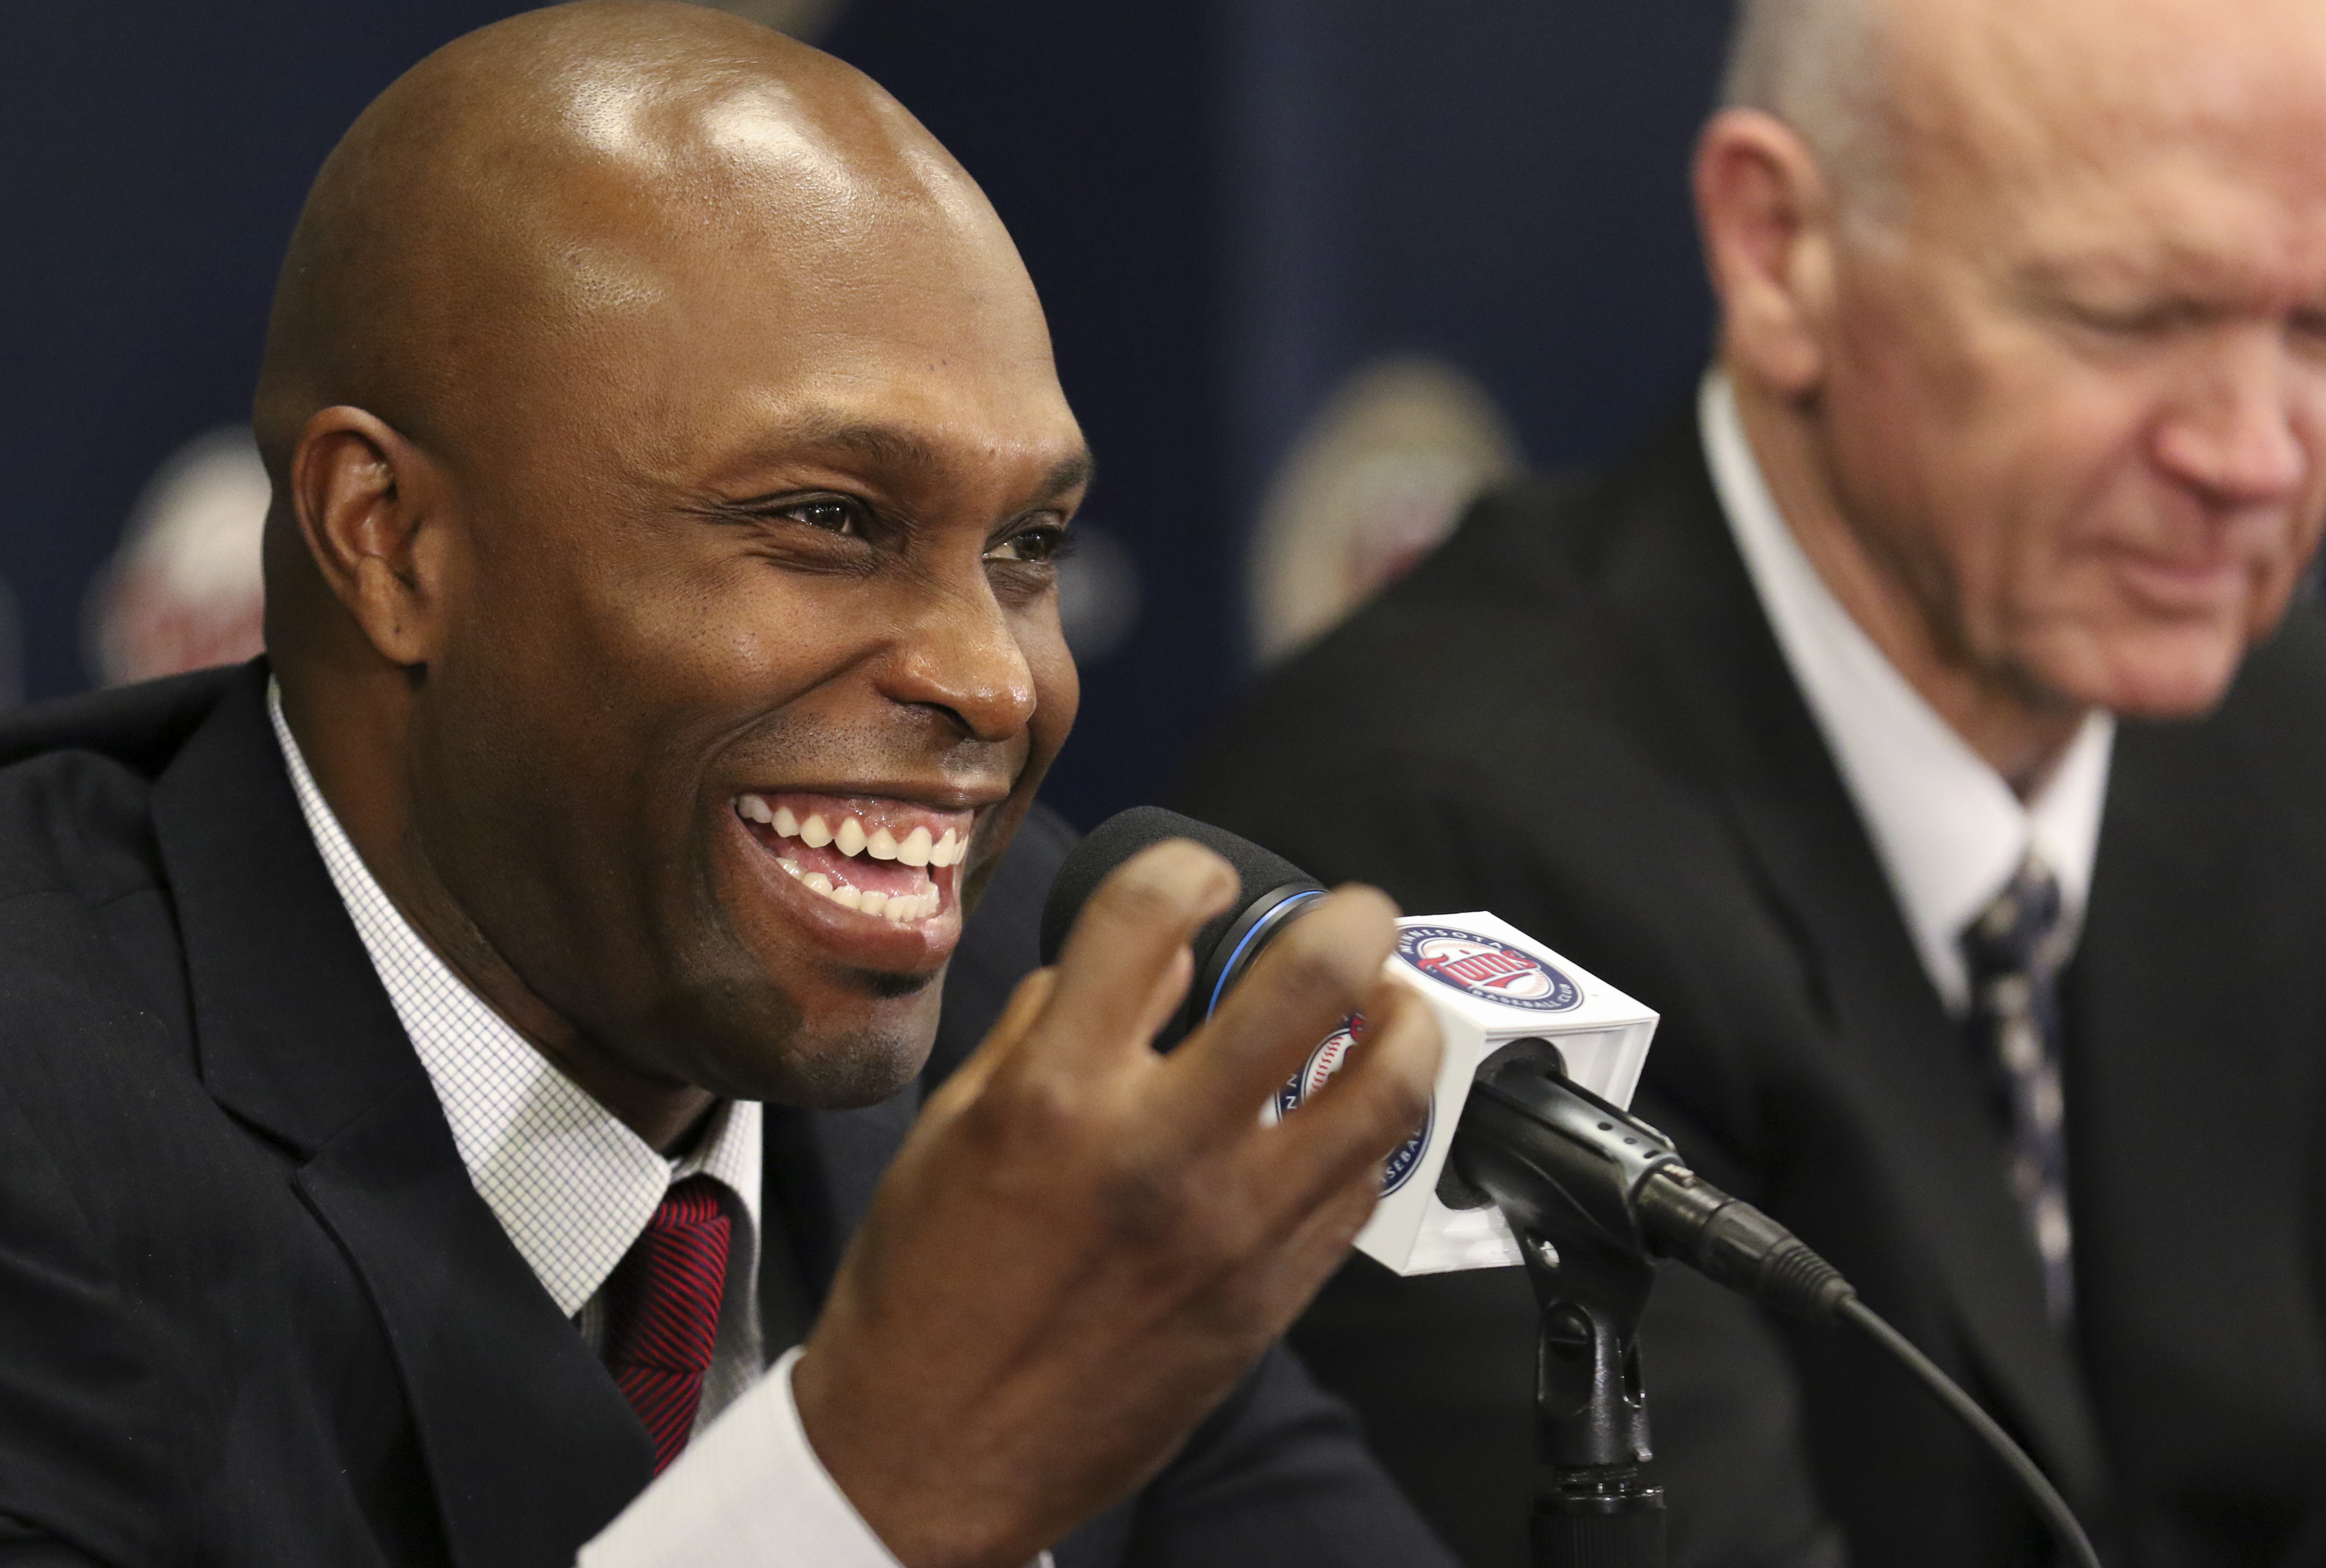 Torii Hunter smiles at a news conference in Minneapolis, Thursday, Nov. 5, 2015. Hunter has declared an end to his playing career of 17-plus major league seasons, including more than a decade with the Minnesota Twins, but he has a plan to stay in the game